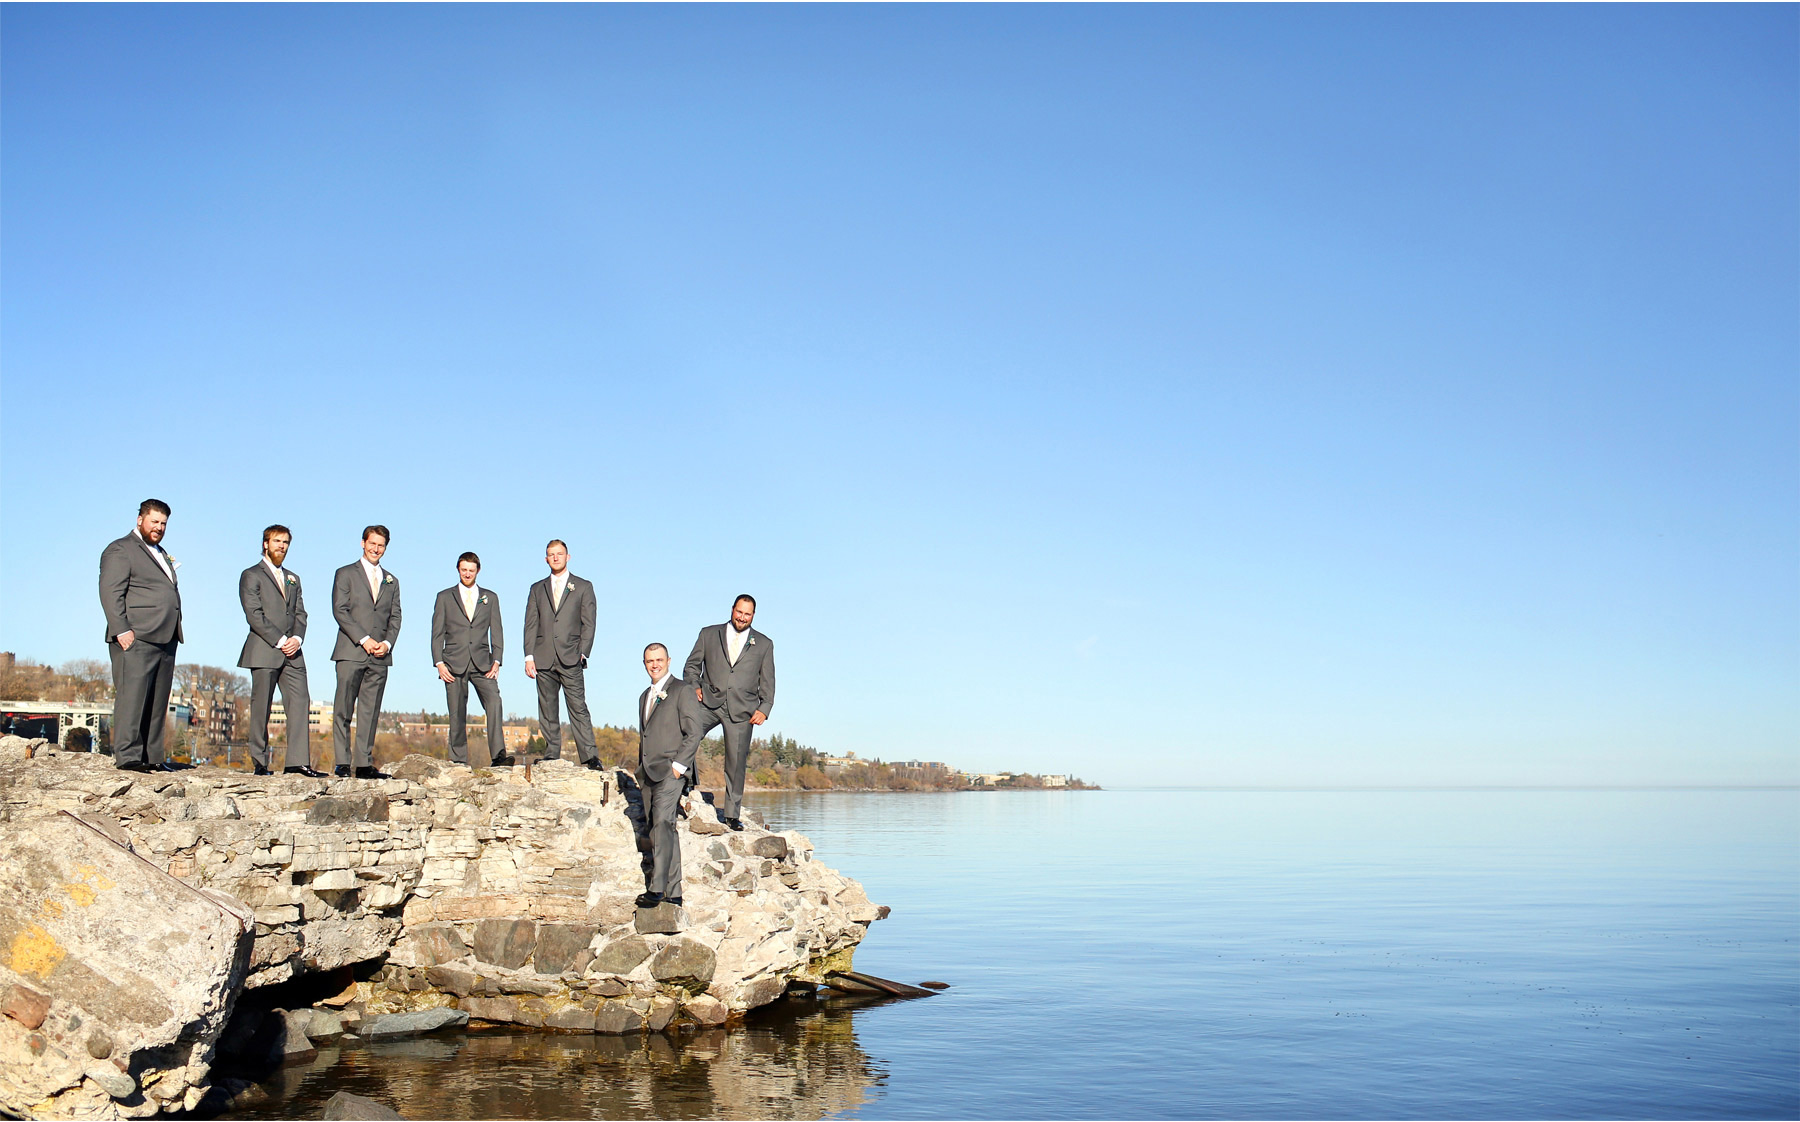 12-Duluth-Minnesota-Wedding-Photographer-by-Andrew-Vick-Photography-Fall-Autumn-Lake-Superior-Groom-Groomsmen-Molly-and-Carson.jpg